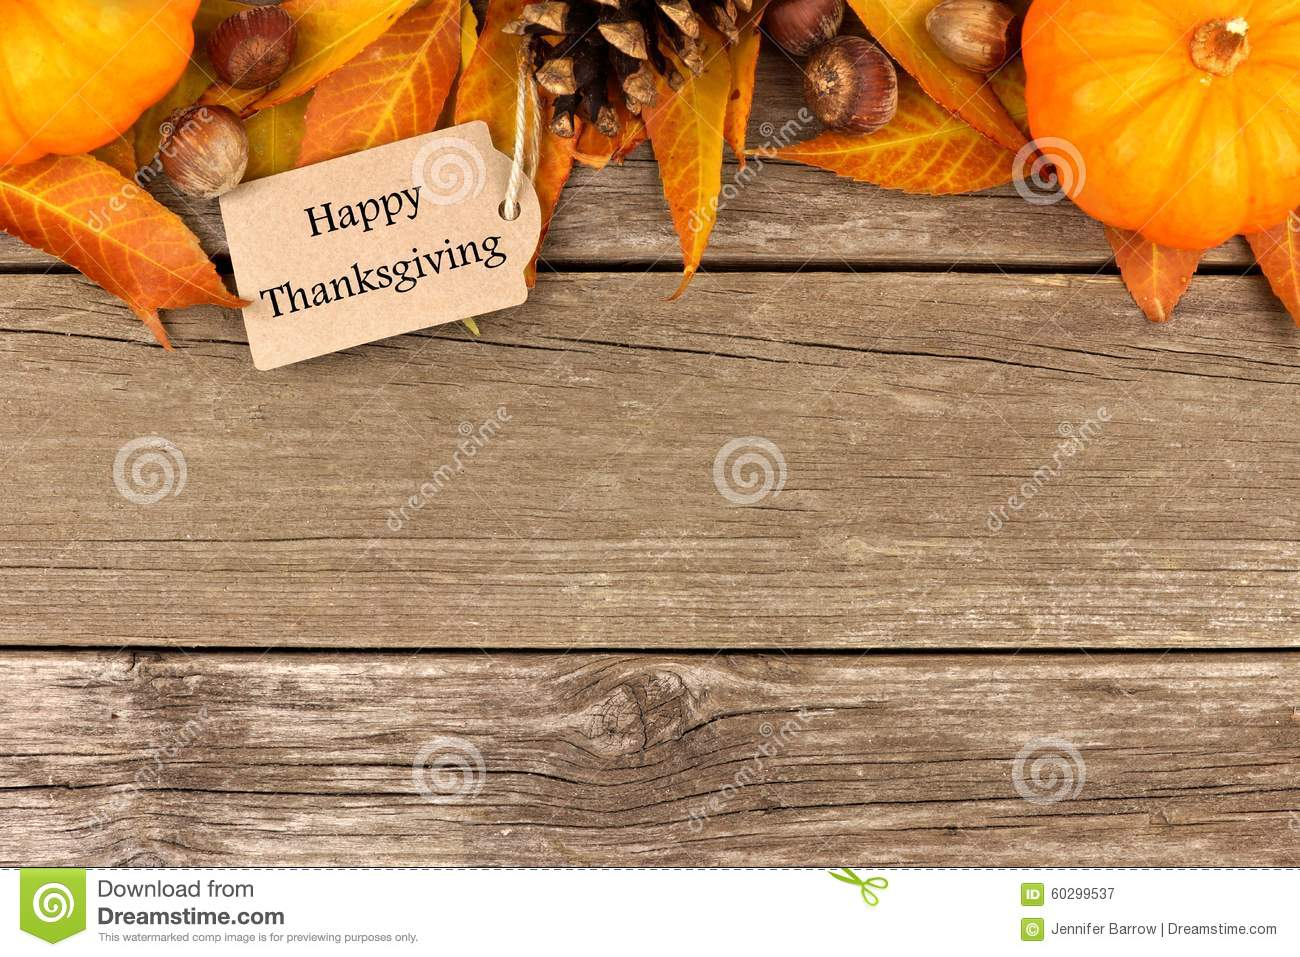 Fall Wallpaper Backgrounds Pumpkins Happy Thanksgiving Tag With Autumn Top Border On Rustic